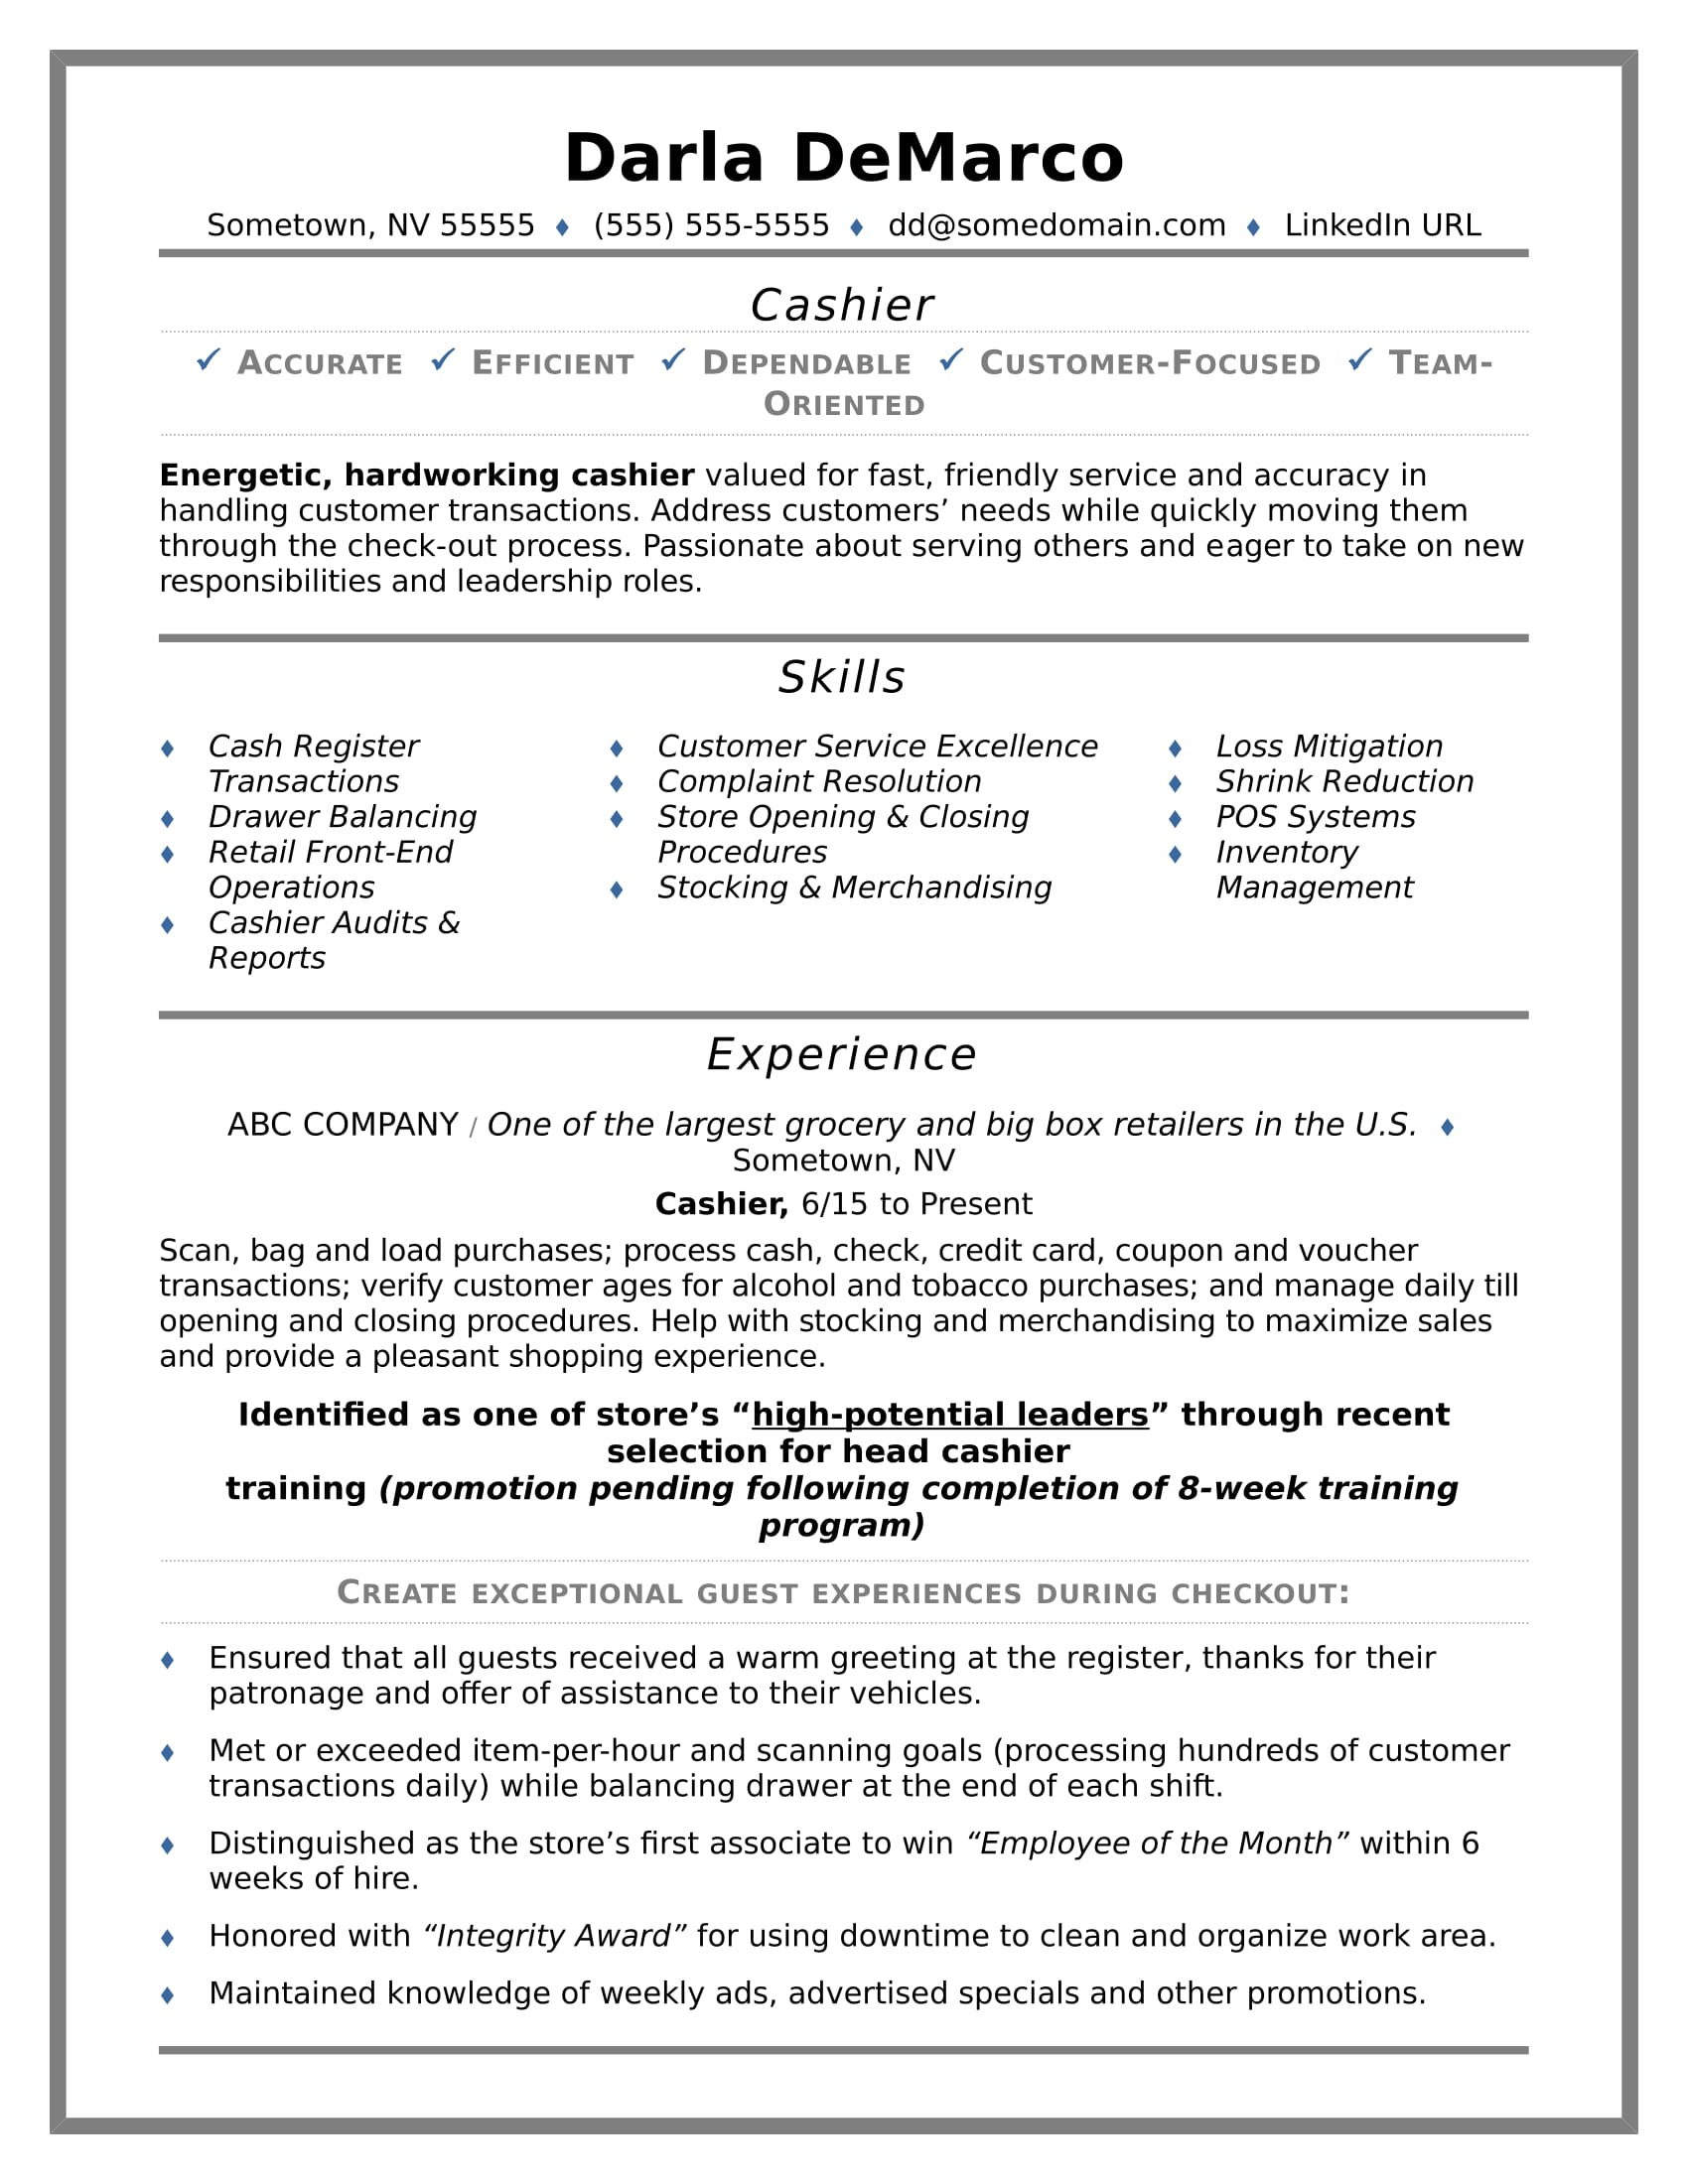 cashier resume sample monster high school paid builder teacher examples nanny job Resume High School Cashier Resume